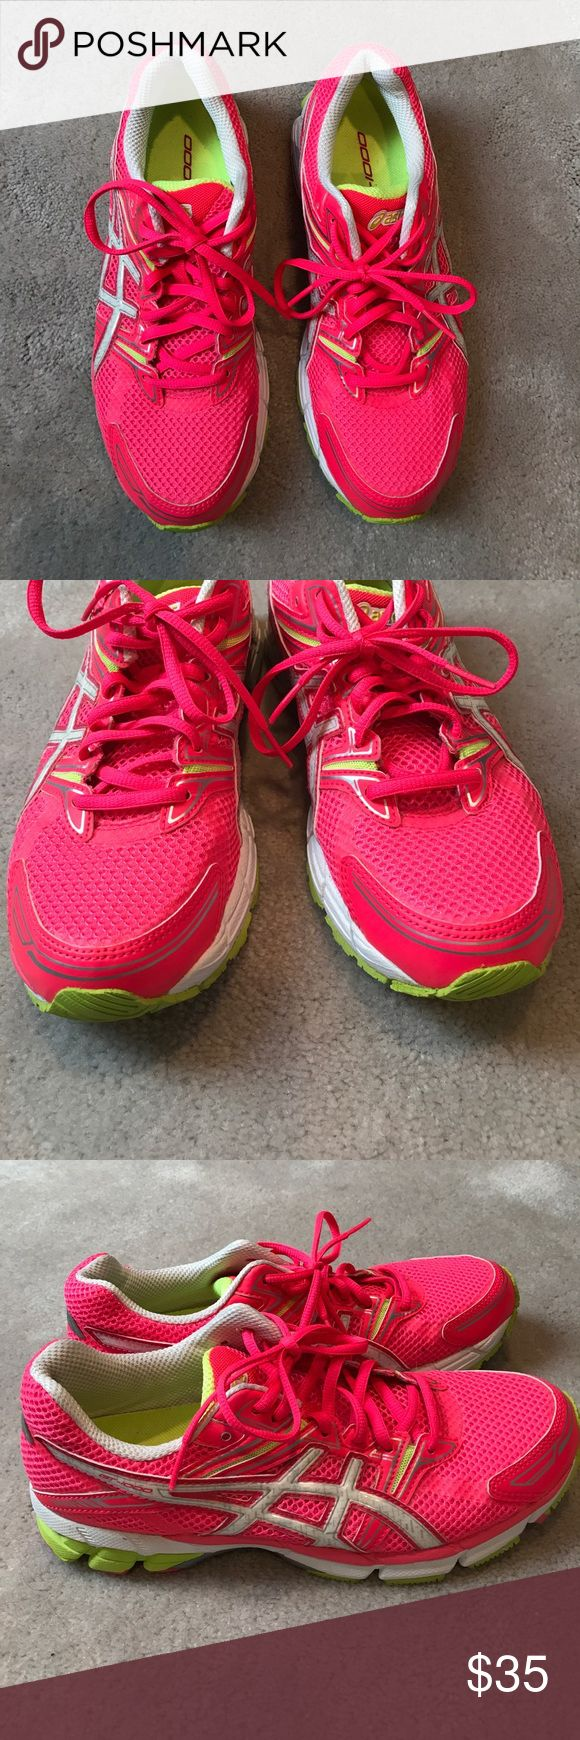 Asics hot pink sneakers excellent condition 9 Once worn . Uppers look new Asics Shoes Sneakers